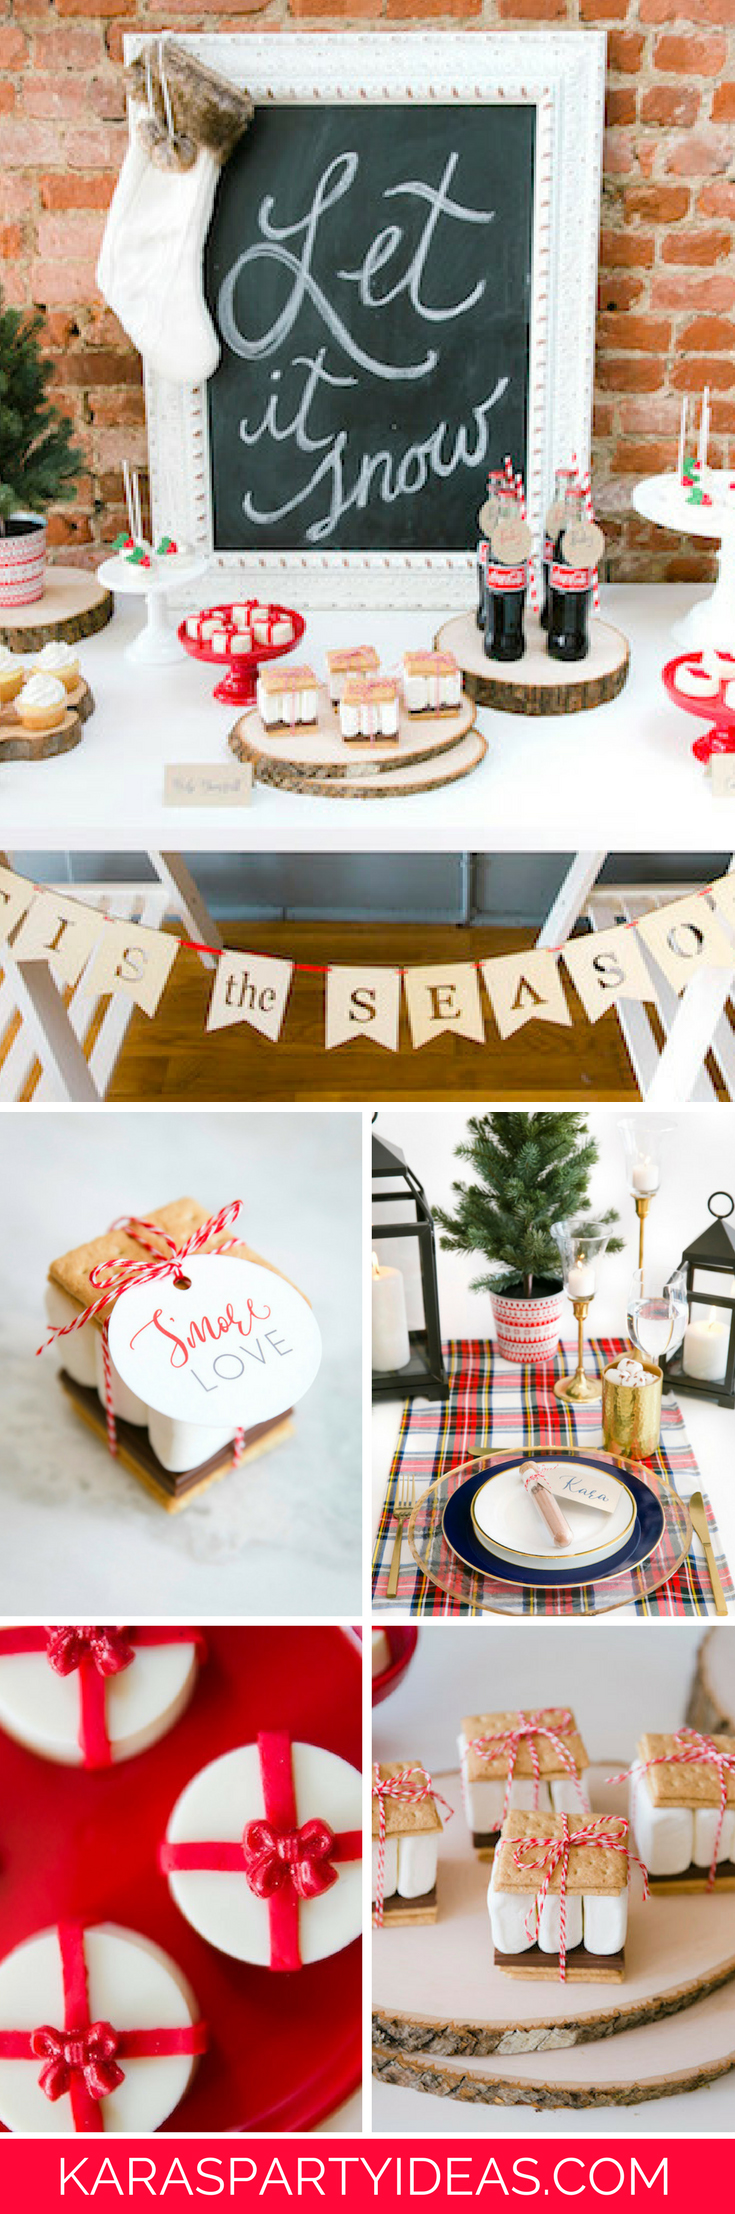 Red and White Let It Snow Christmas Party via Kara's Party Ideas - KarasPartyIdeas.com